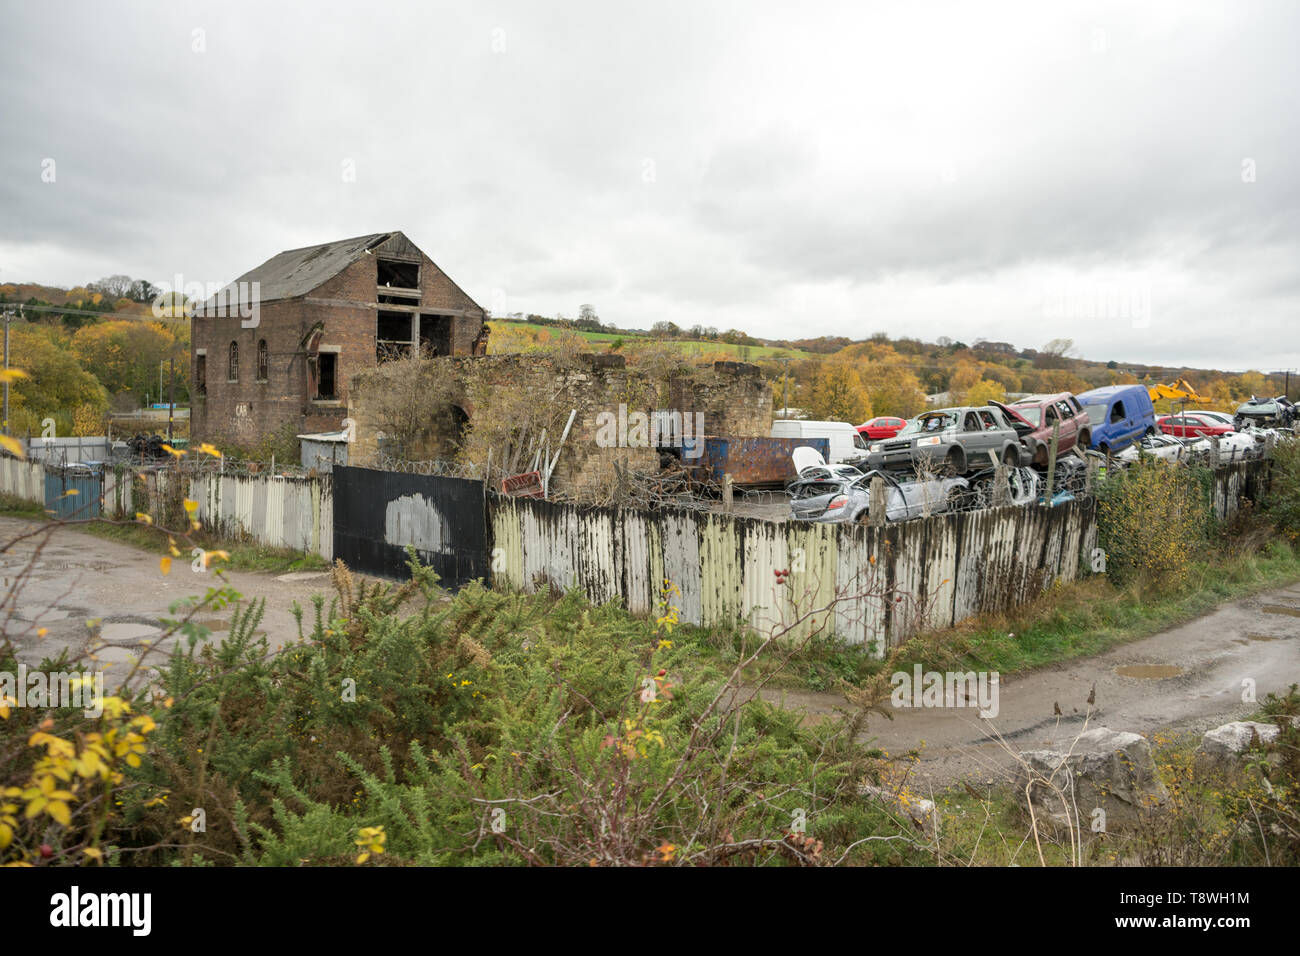 Scrap yard on the site of ex-mining place, North Wales, UK - Stock Image